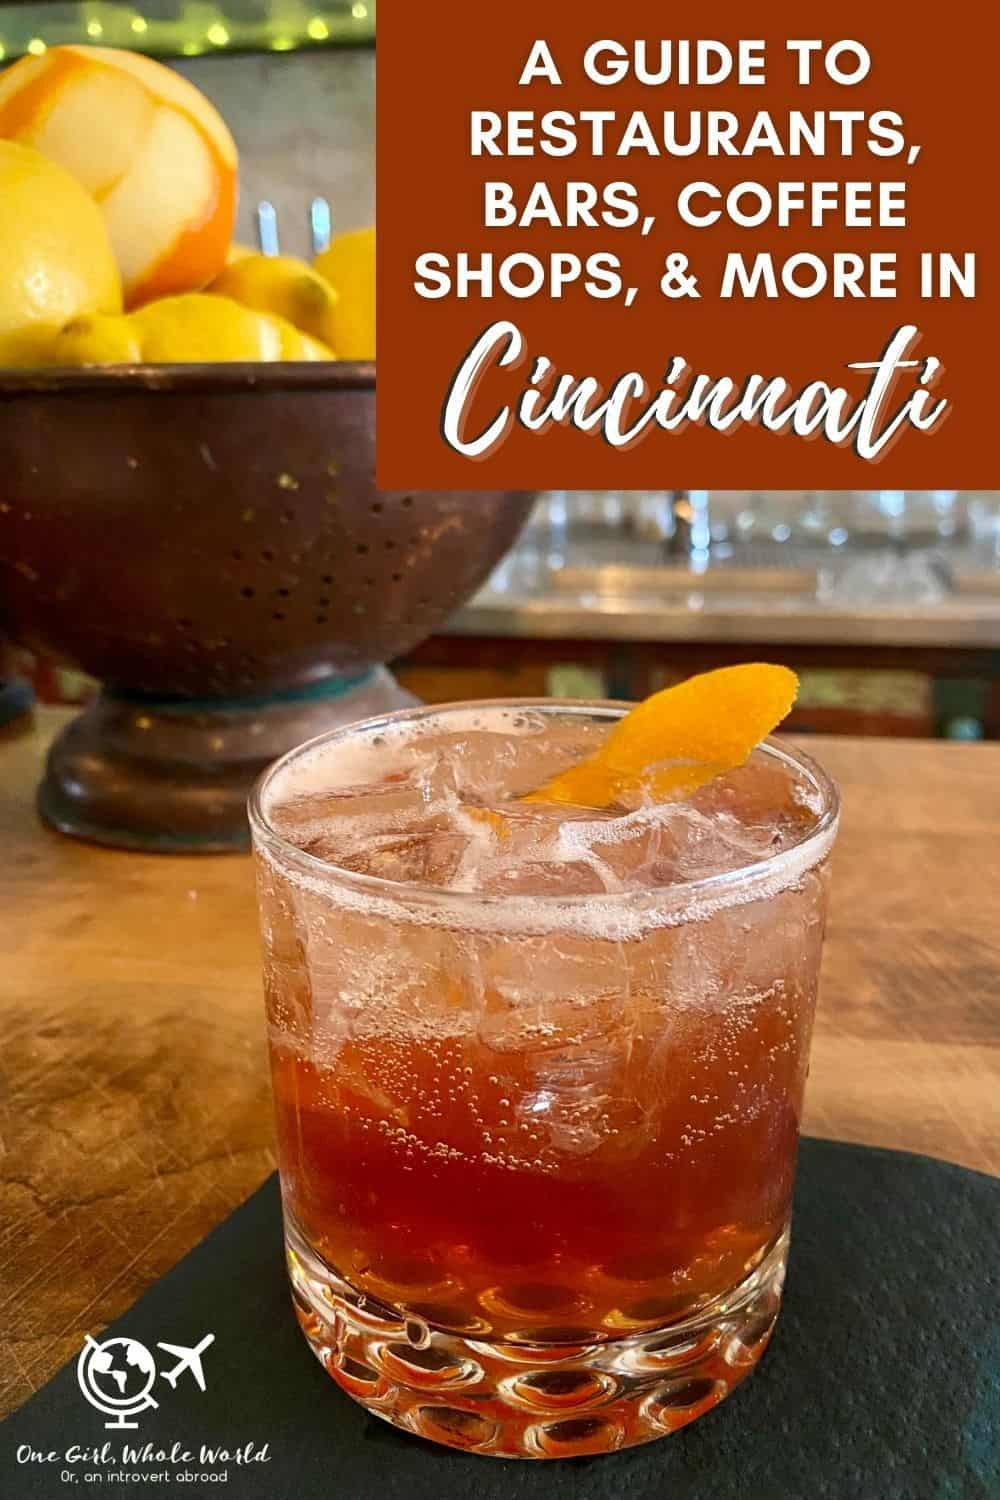 A Guide to Cincinnati's Foodie Scene | Where to eat in Cincinnati, cool bars, bakeries, breweries, Cincinnati coffee shops, and more! The food scene here is pretty awesome, and it's a great weekend trip. What to do in Cincinnati, Cincinnati restaurant recommendations, Ohio travel. #cincinnati #foodie